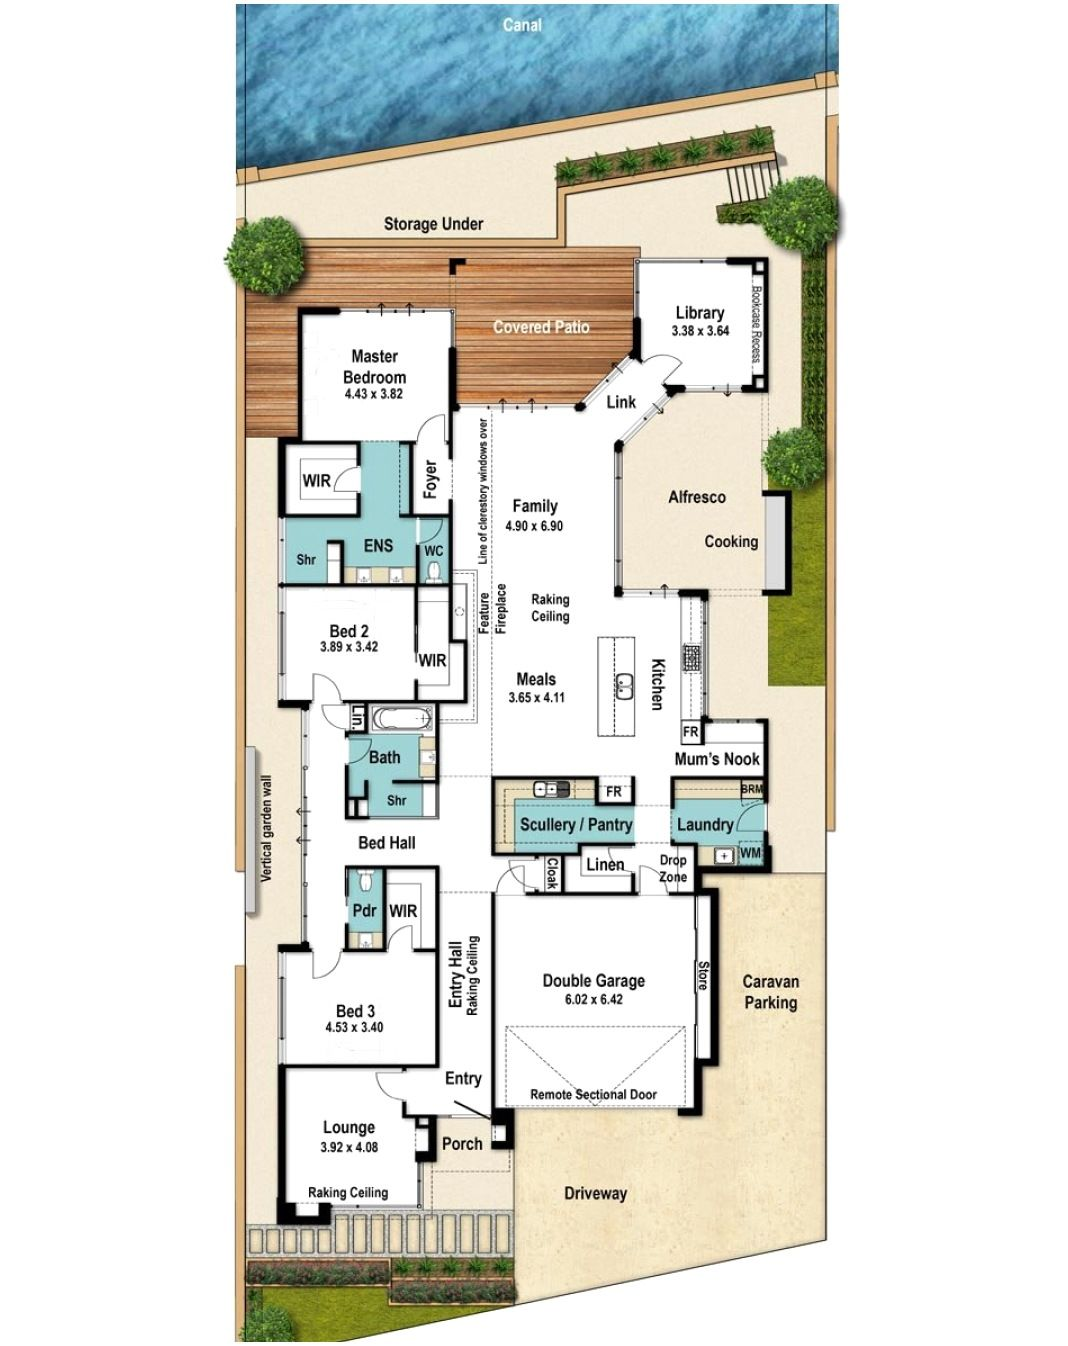 Canal Floor Plan With Caravan Bay In 2021 Narrow House Plans Single Storey House Plans House Plans Australia